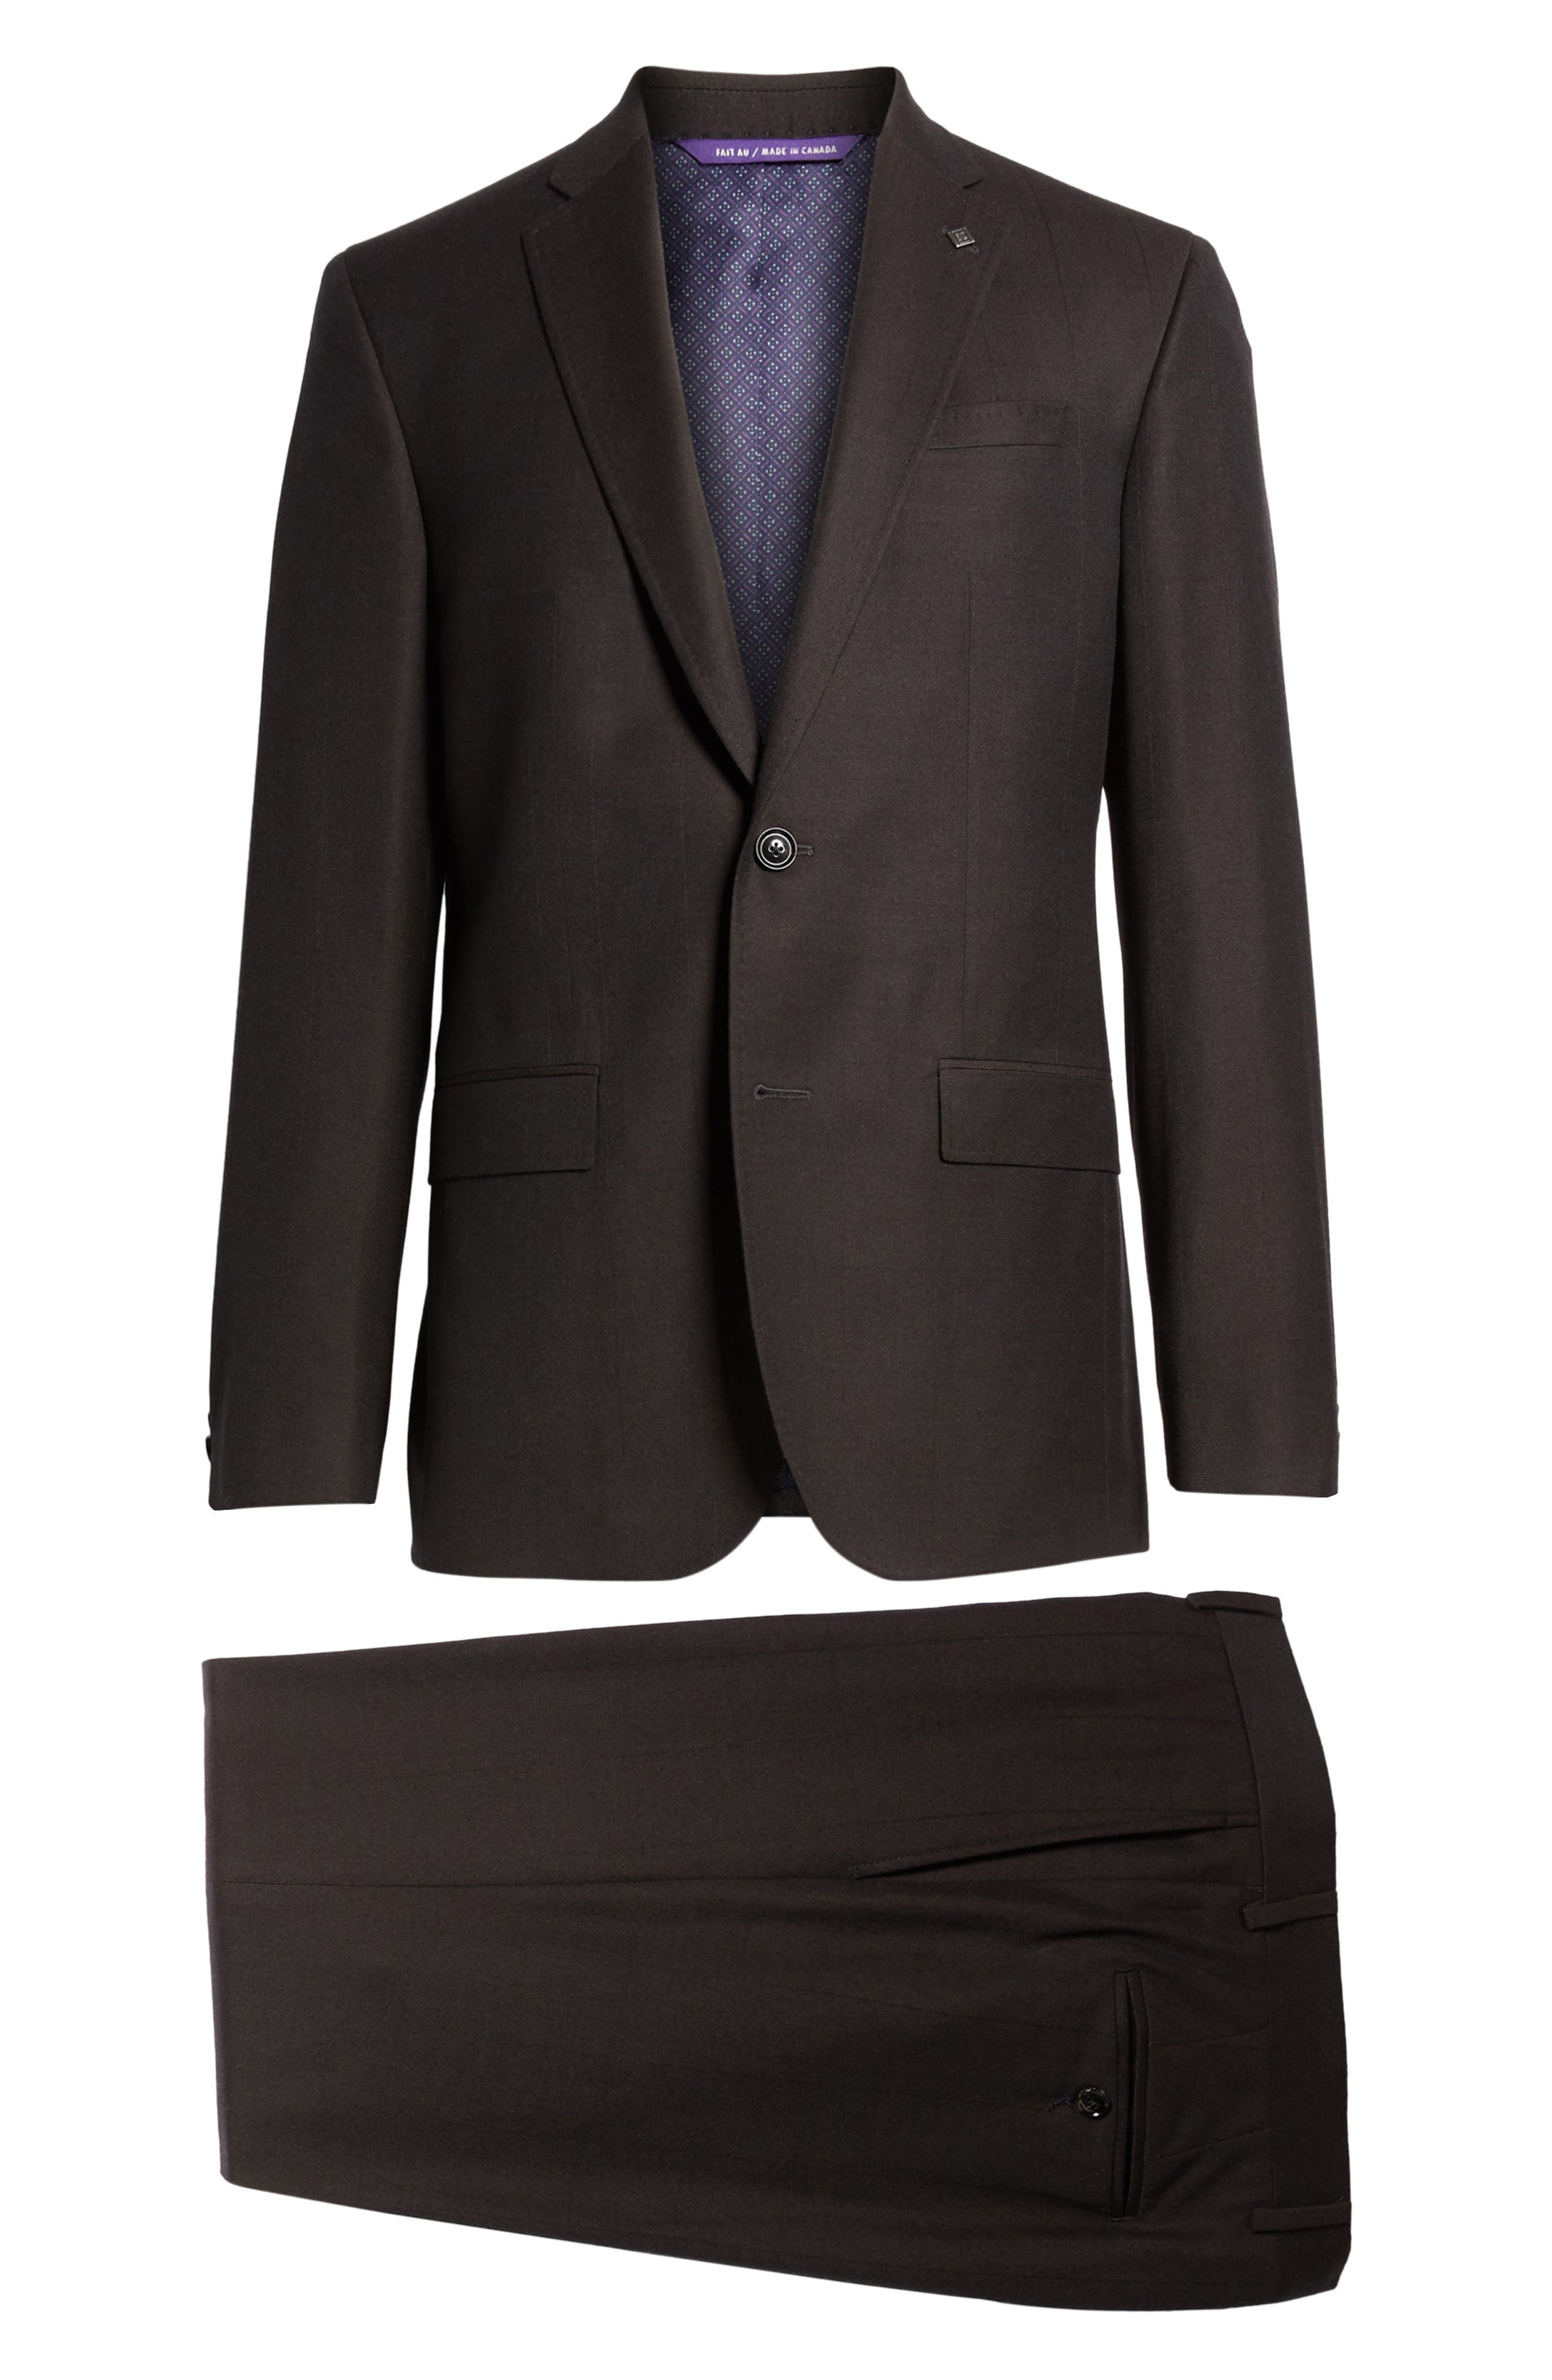 Jay Trim Fit Solid Wool Suit,                             Alternate thumbnail 8, color,                             Brown